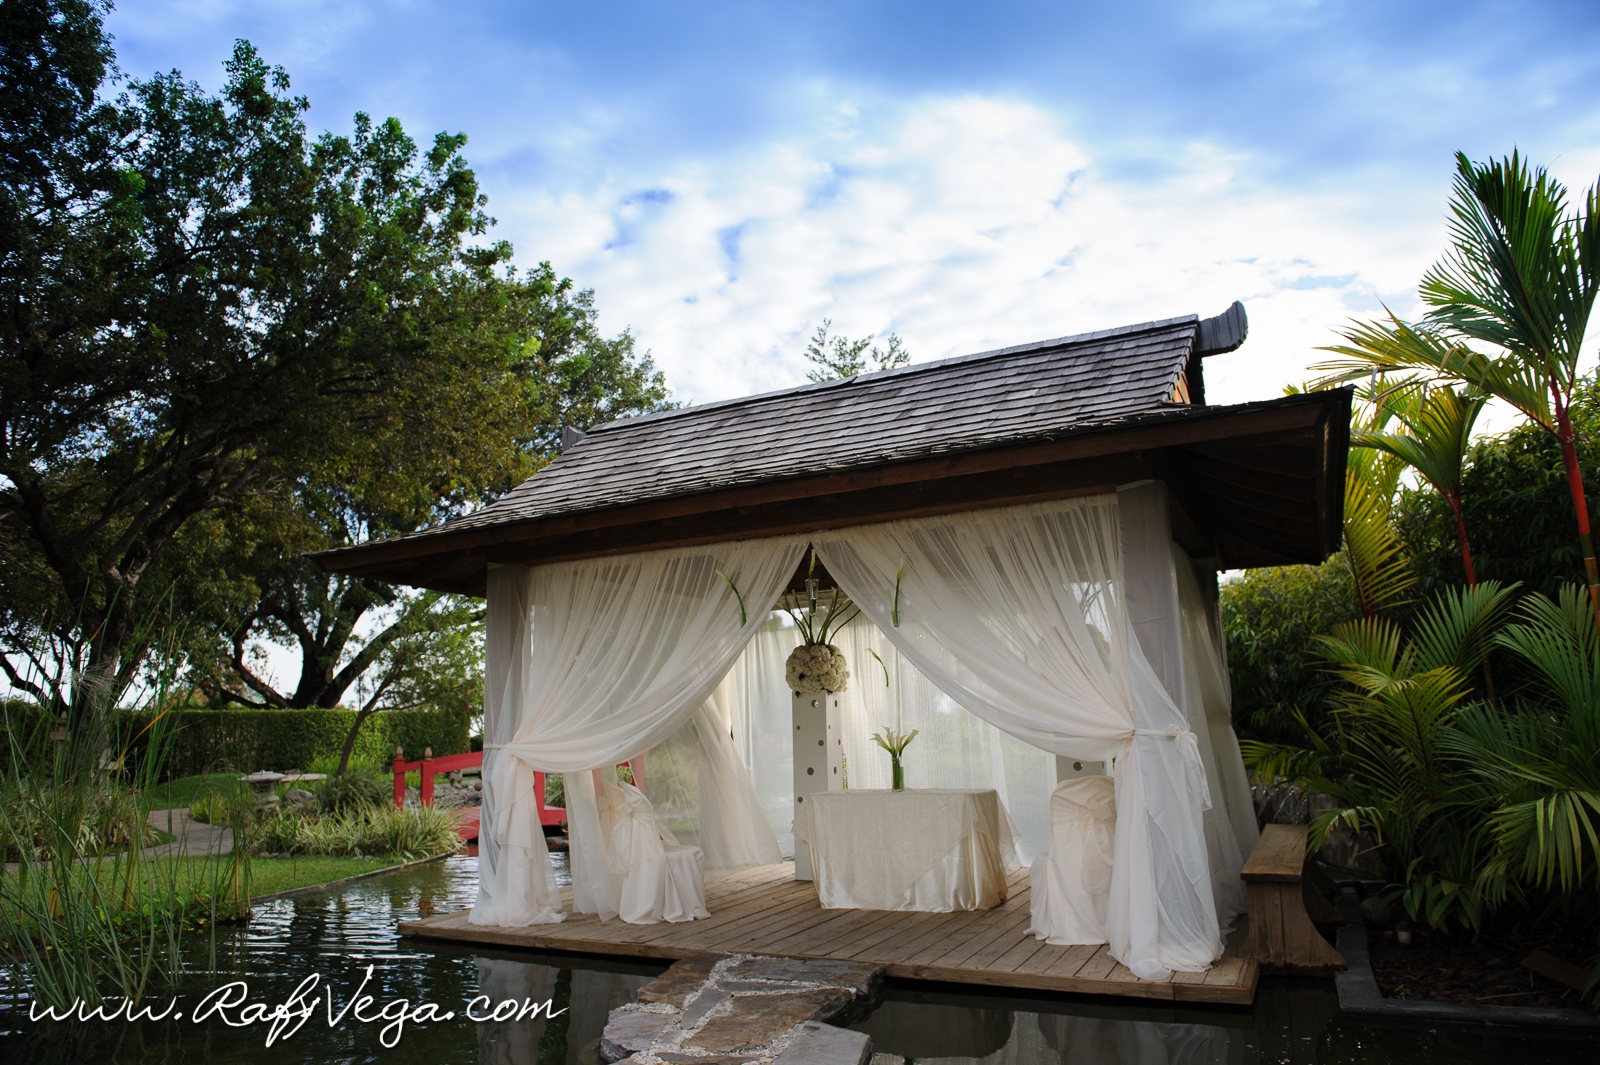 Rafy vega photography fotografo de bodas wedding for Jardin japones ponce